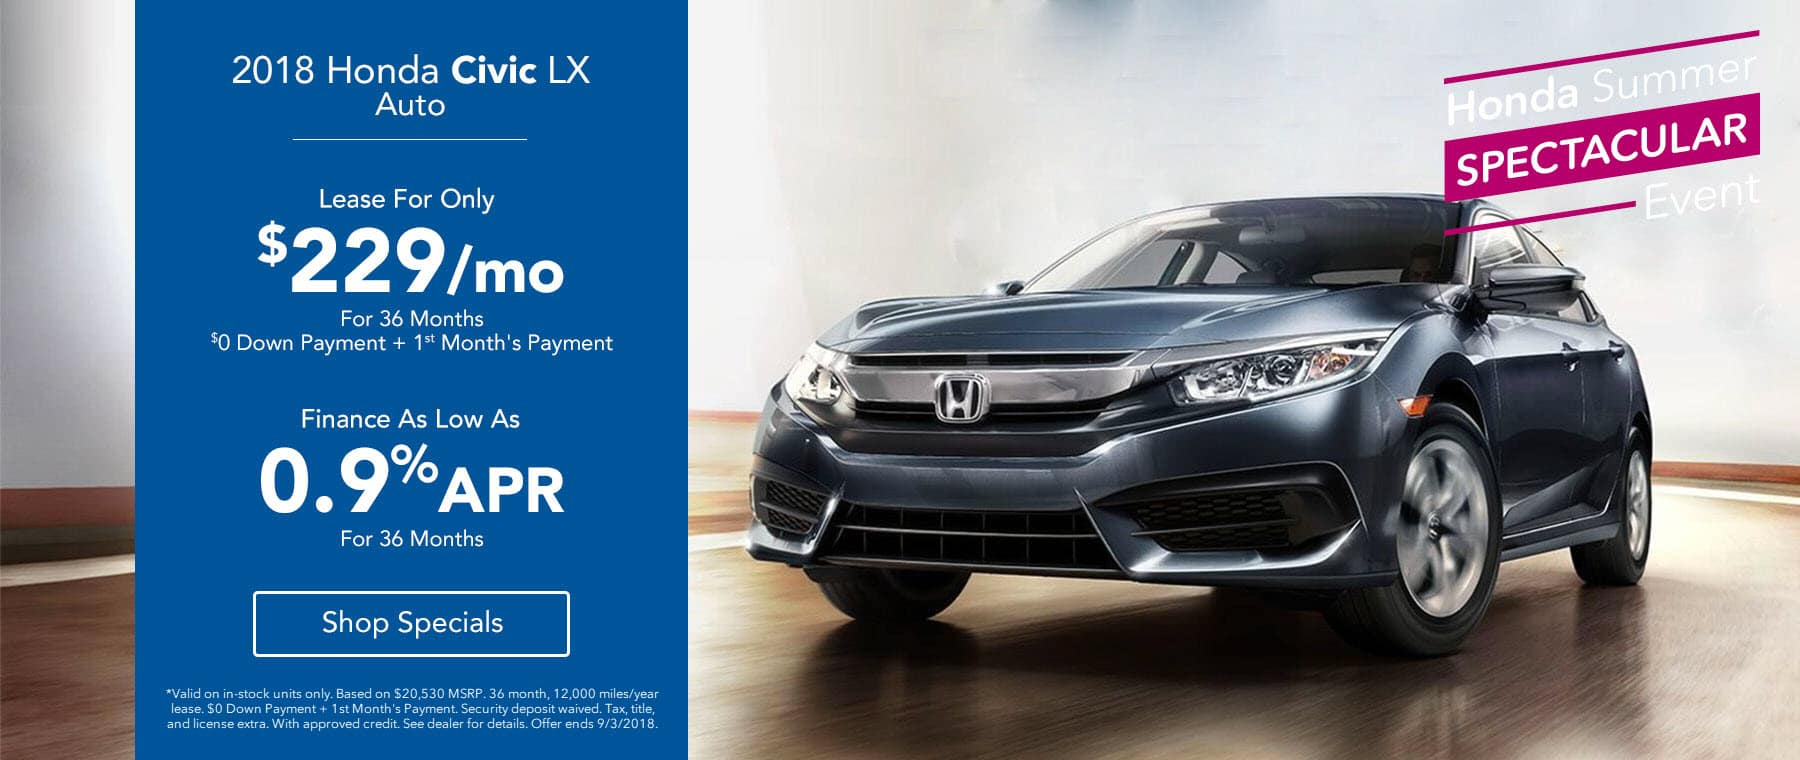 2018 Honda Civic LX Lease for Only $229 for 36 Months